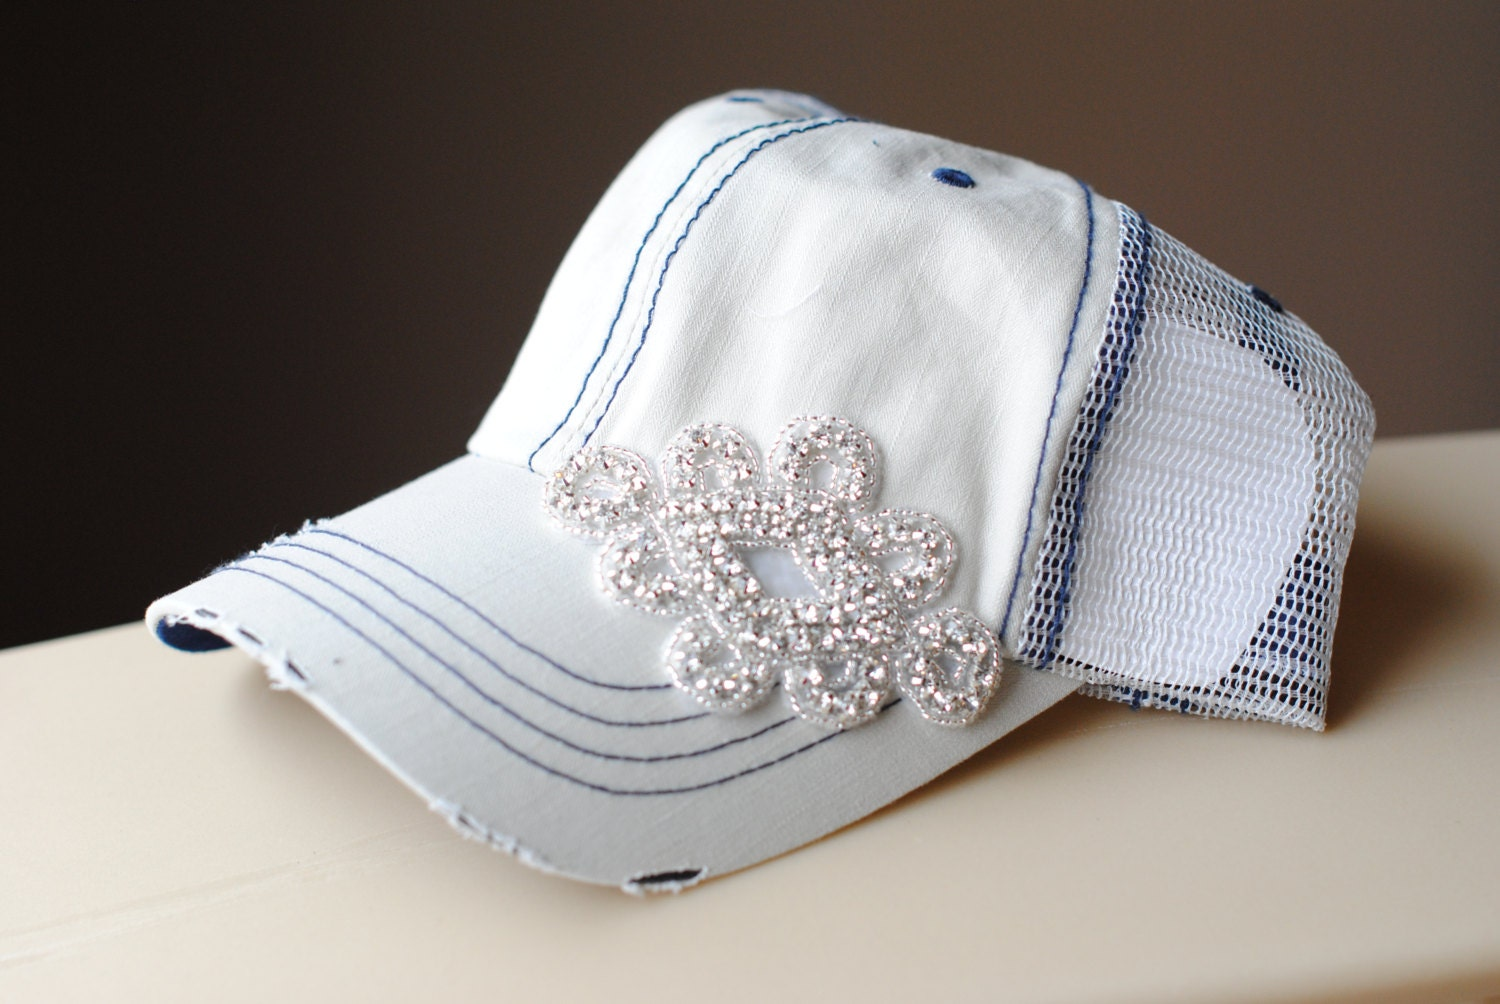 womens hats womens trucker hats womens bling hats womens